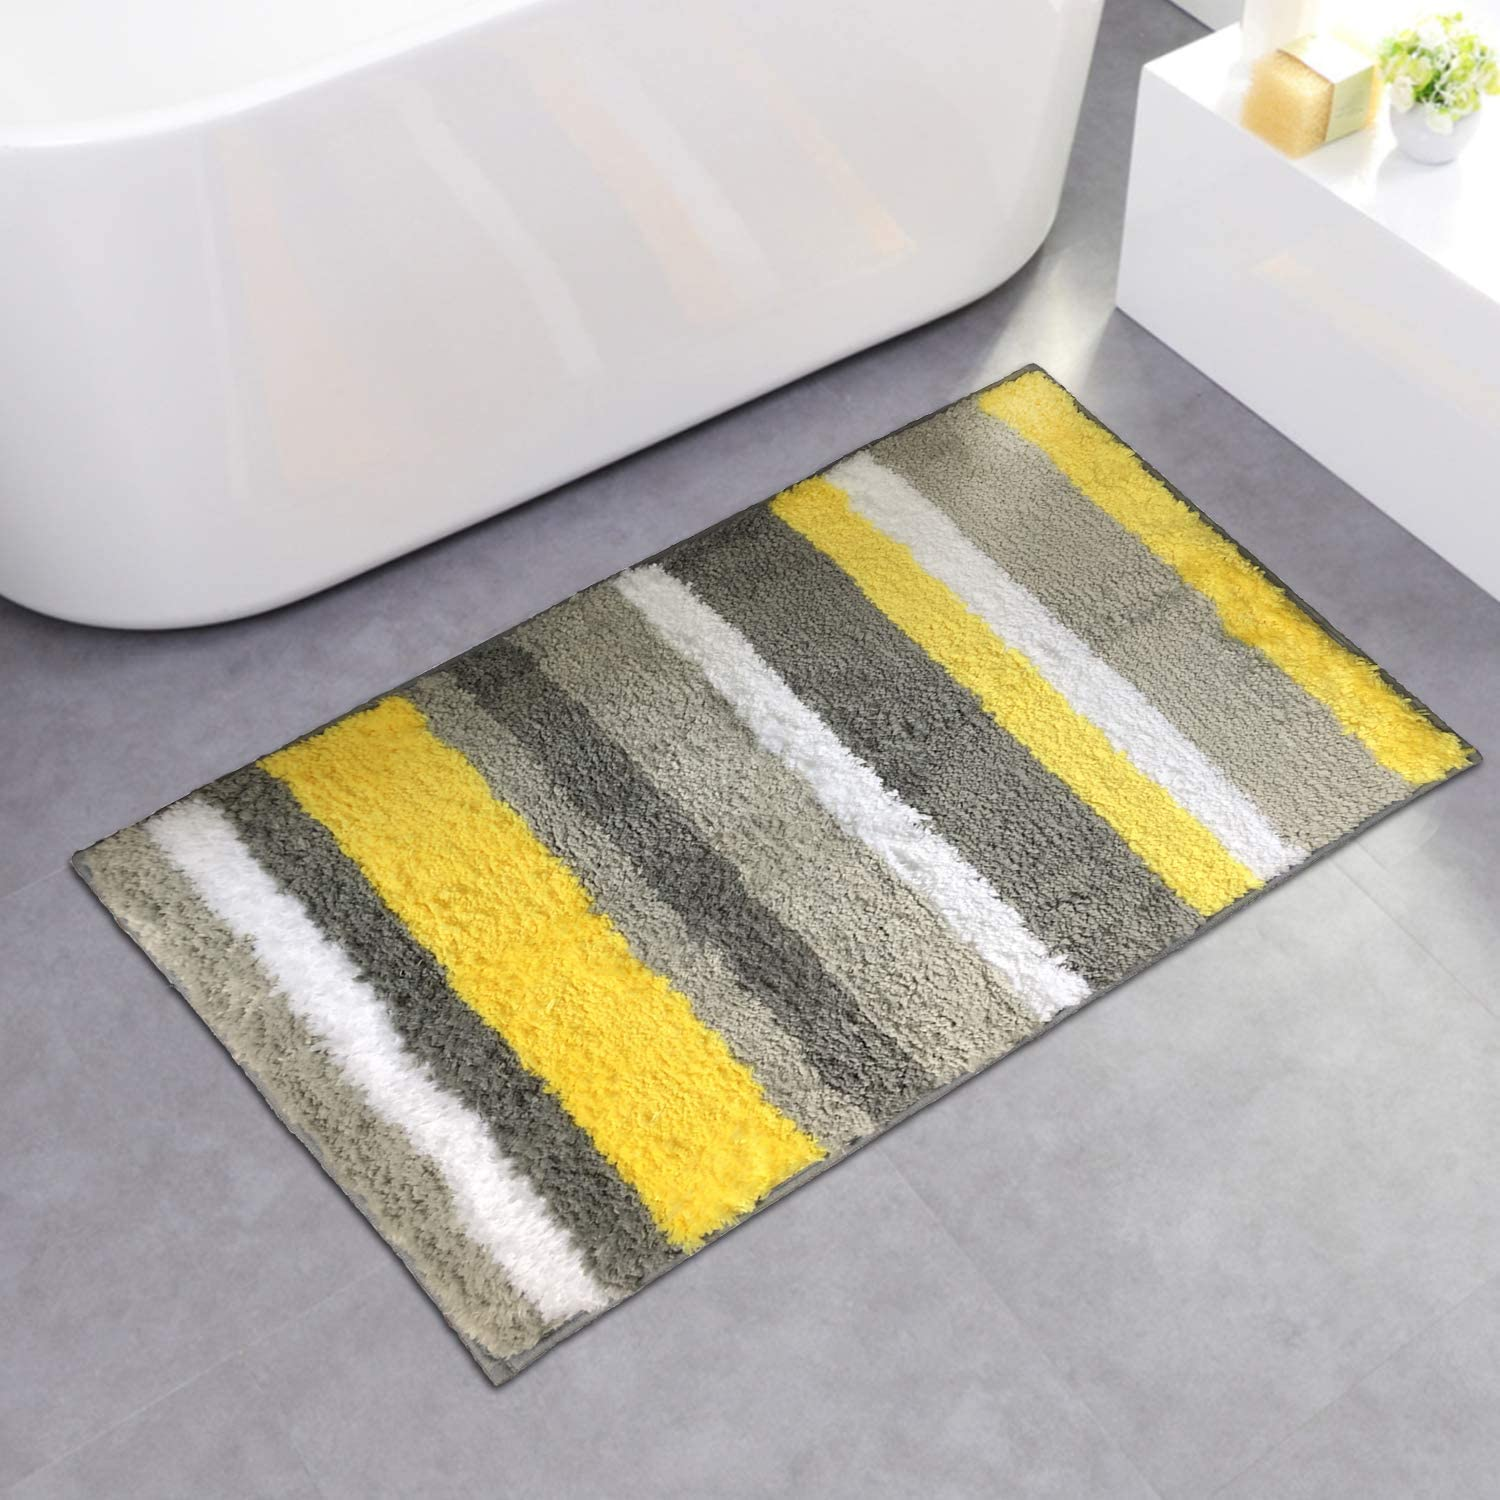 """NC HOME Striped Soft Shaggy Bathroom Rugs Non Slip Bath Mat for Kitchen Bedroom, Strong Underside, Plush Carpet Mats for Tub for Kids (20"""" x 31.5"""", Yellow)"""